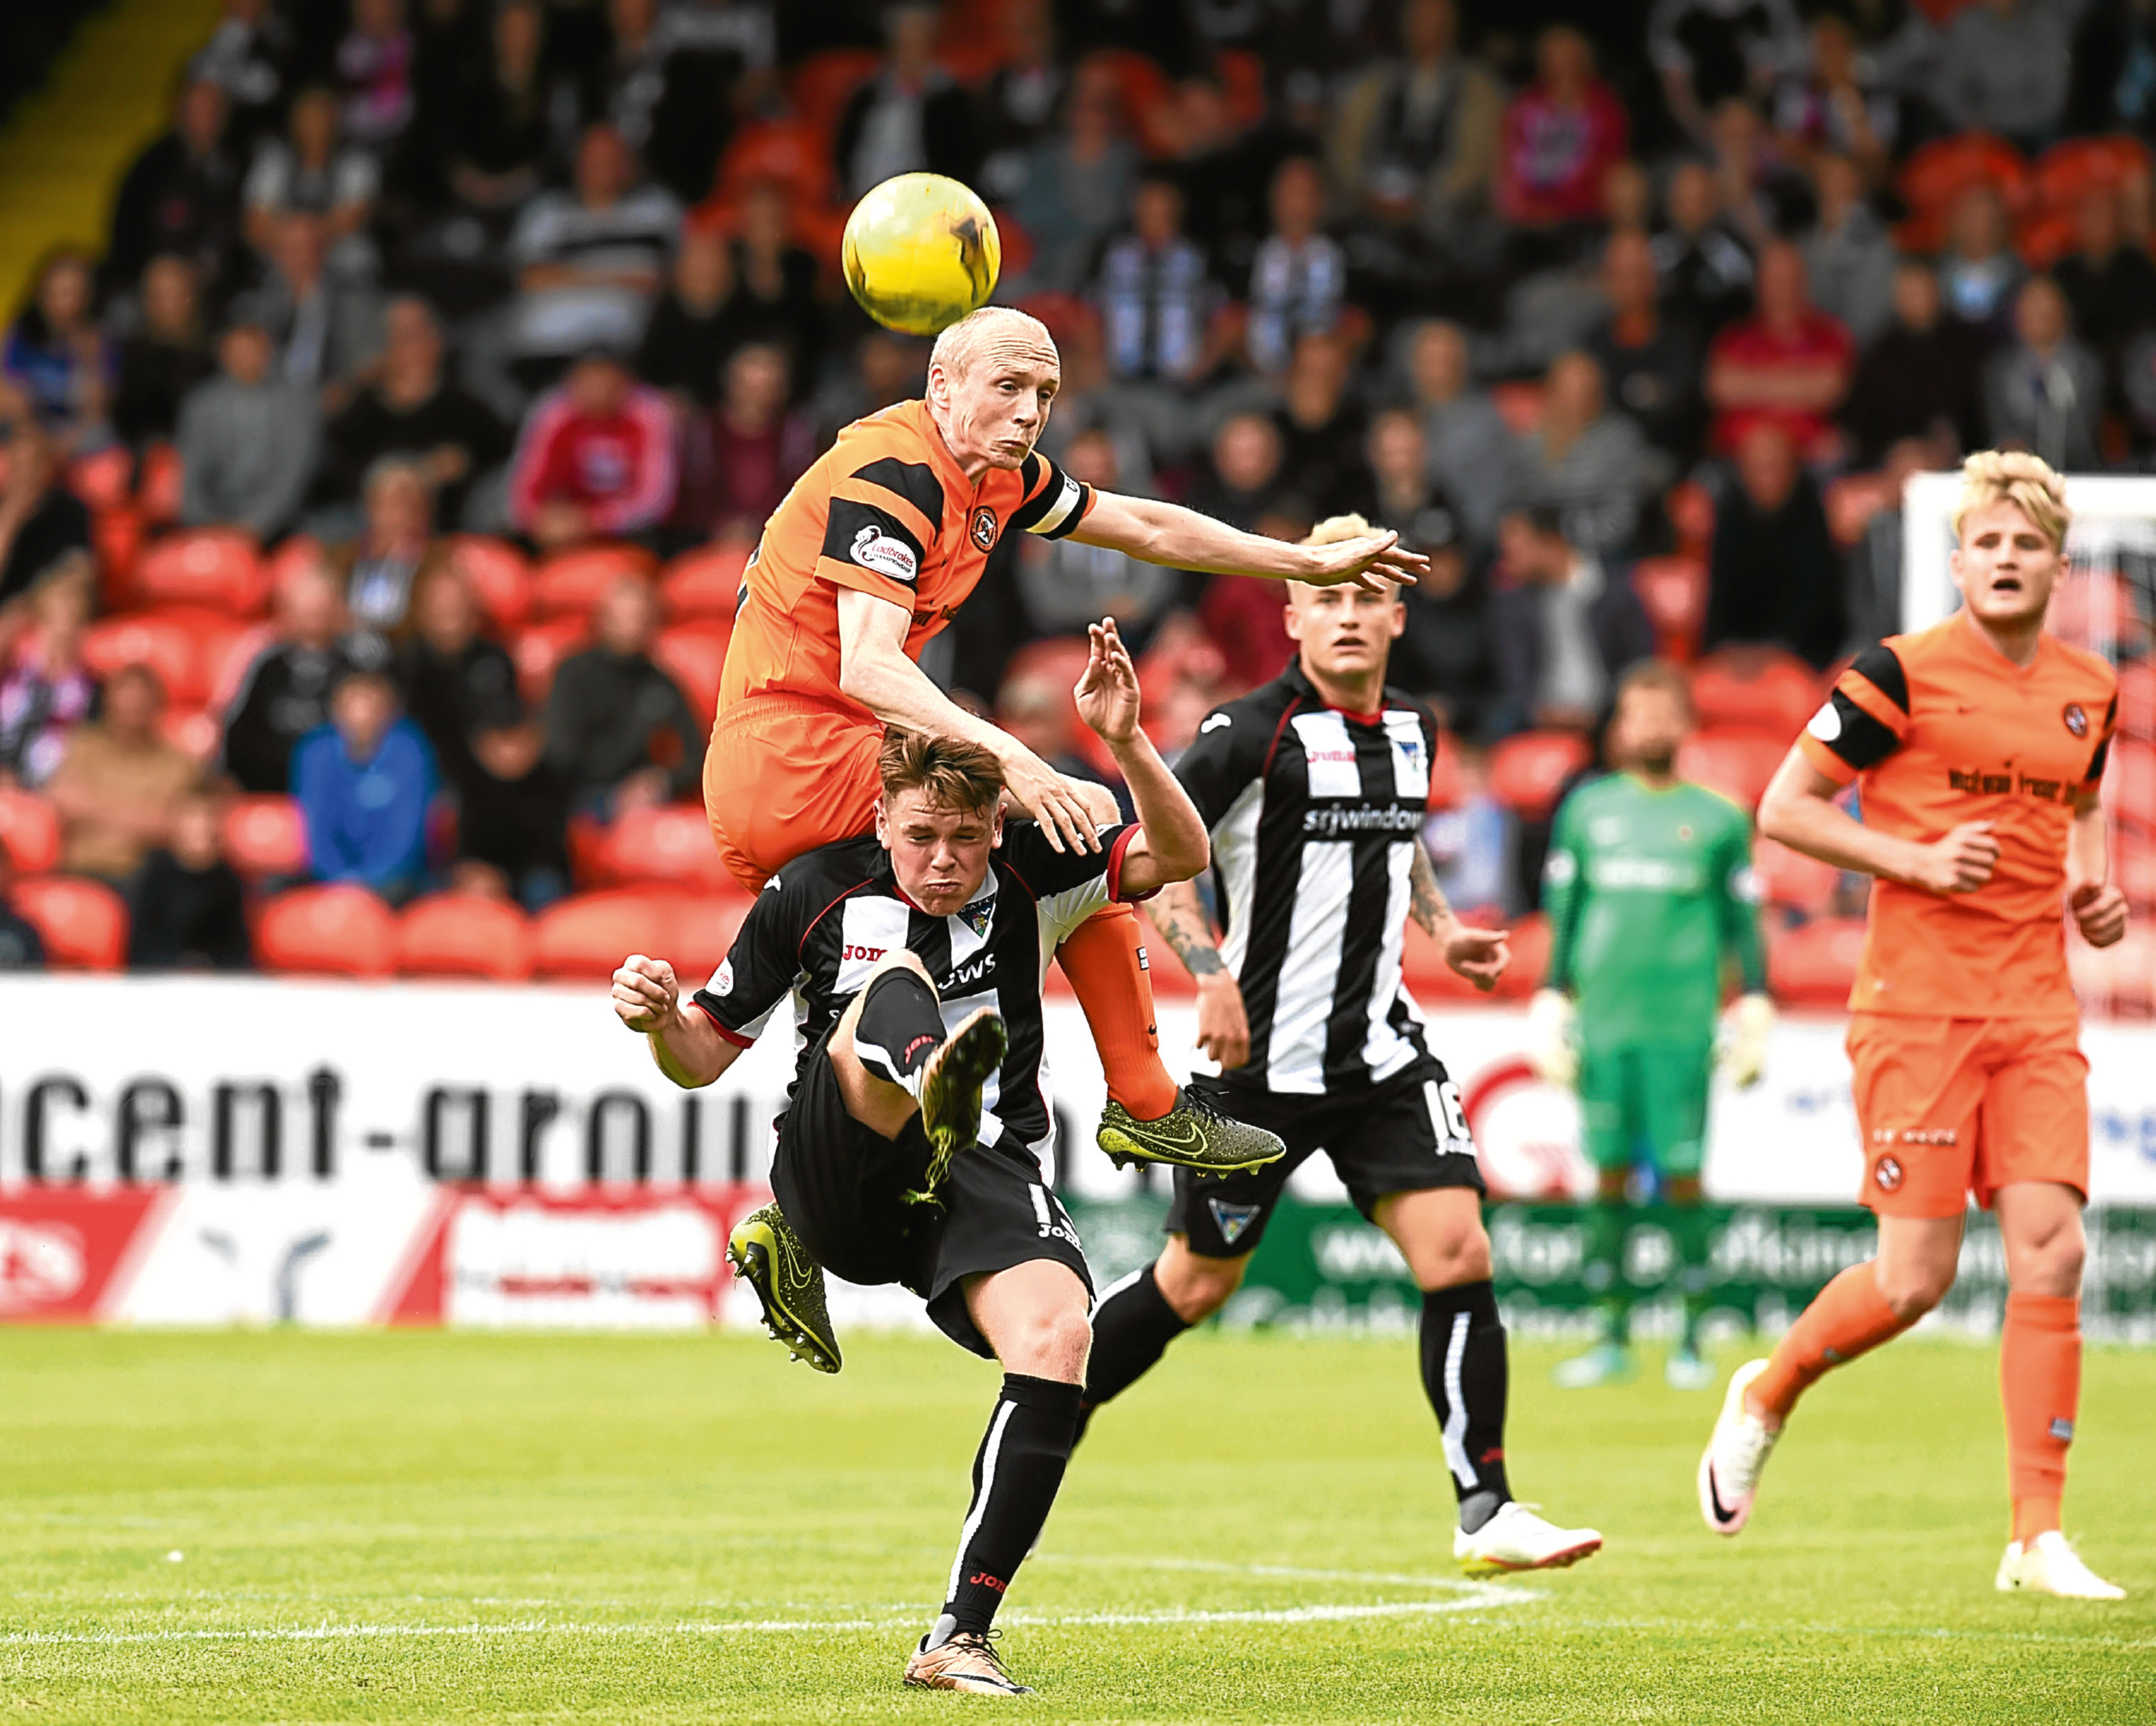 Dundee United midfielder Willo Flood knows his side will have to be at their best on Saturday evening.